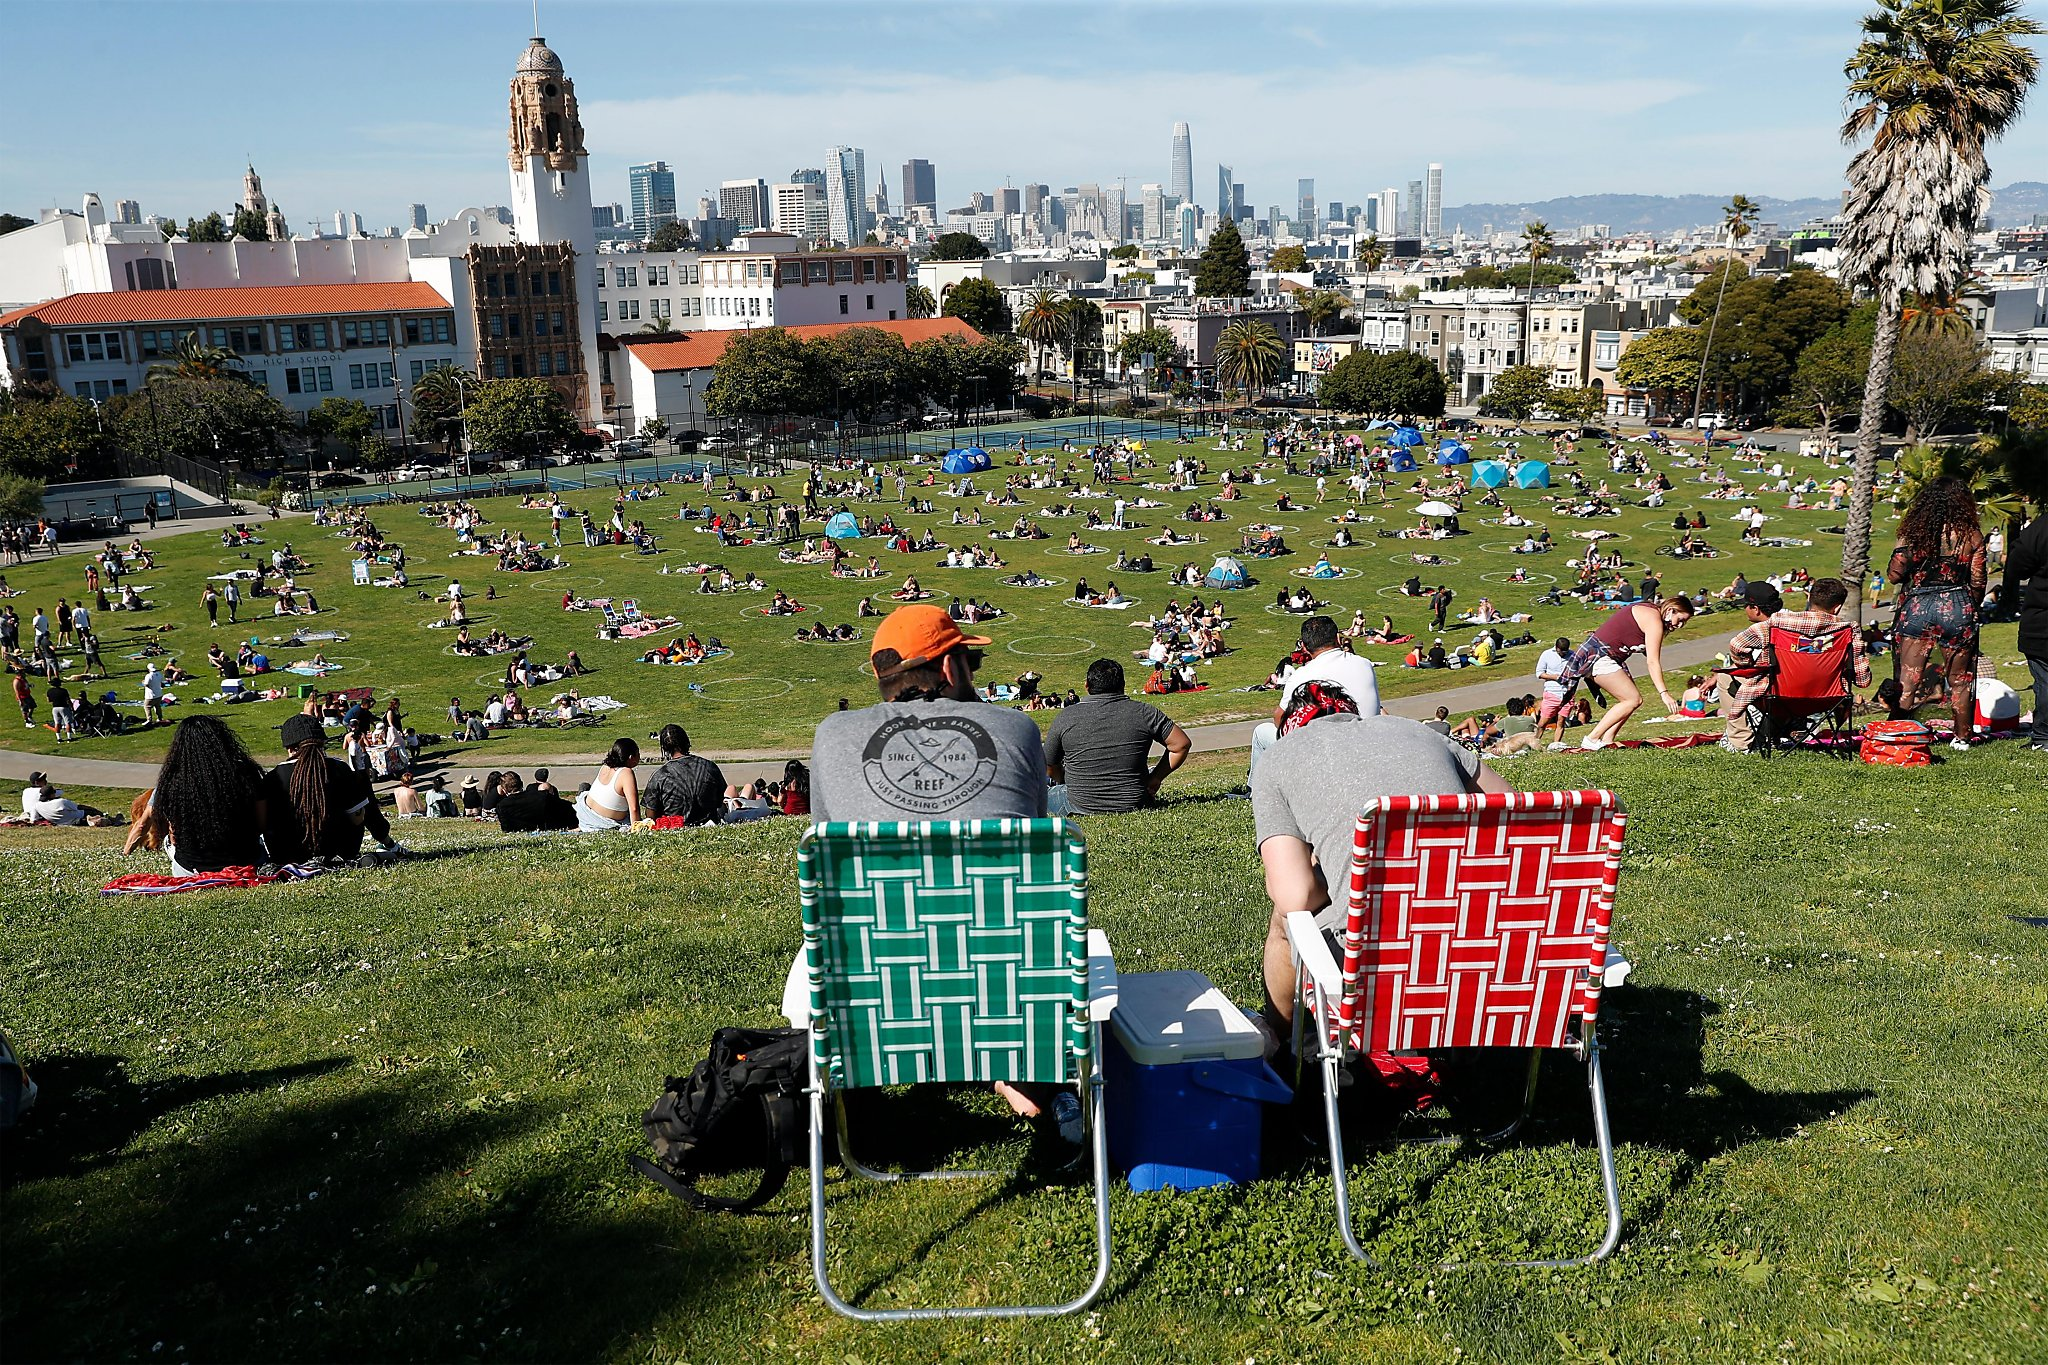 Crowds head outdoors for Memorial Day weekend, mostly keeping distance